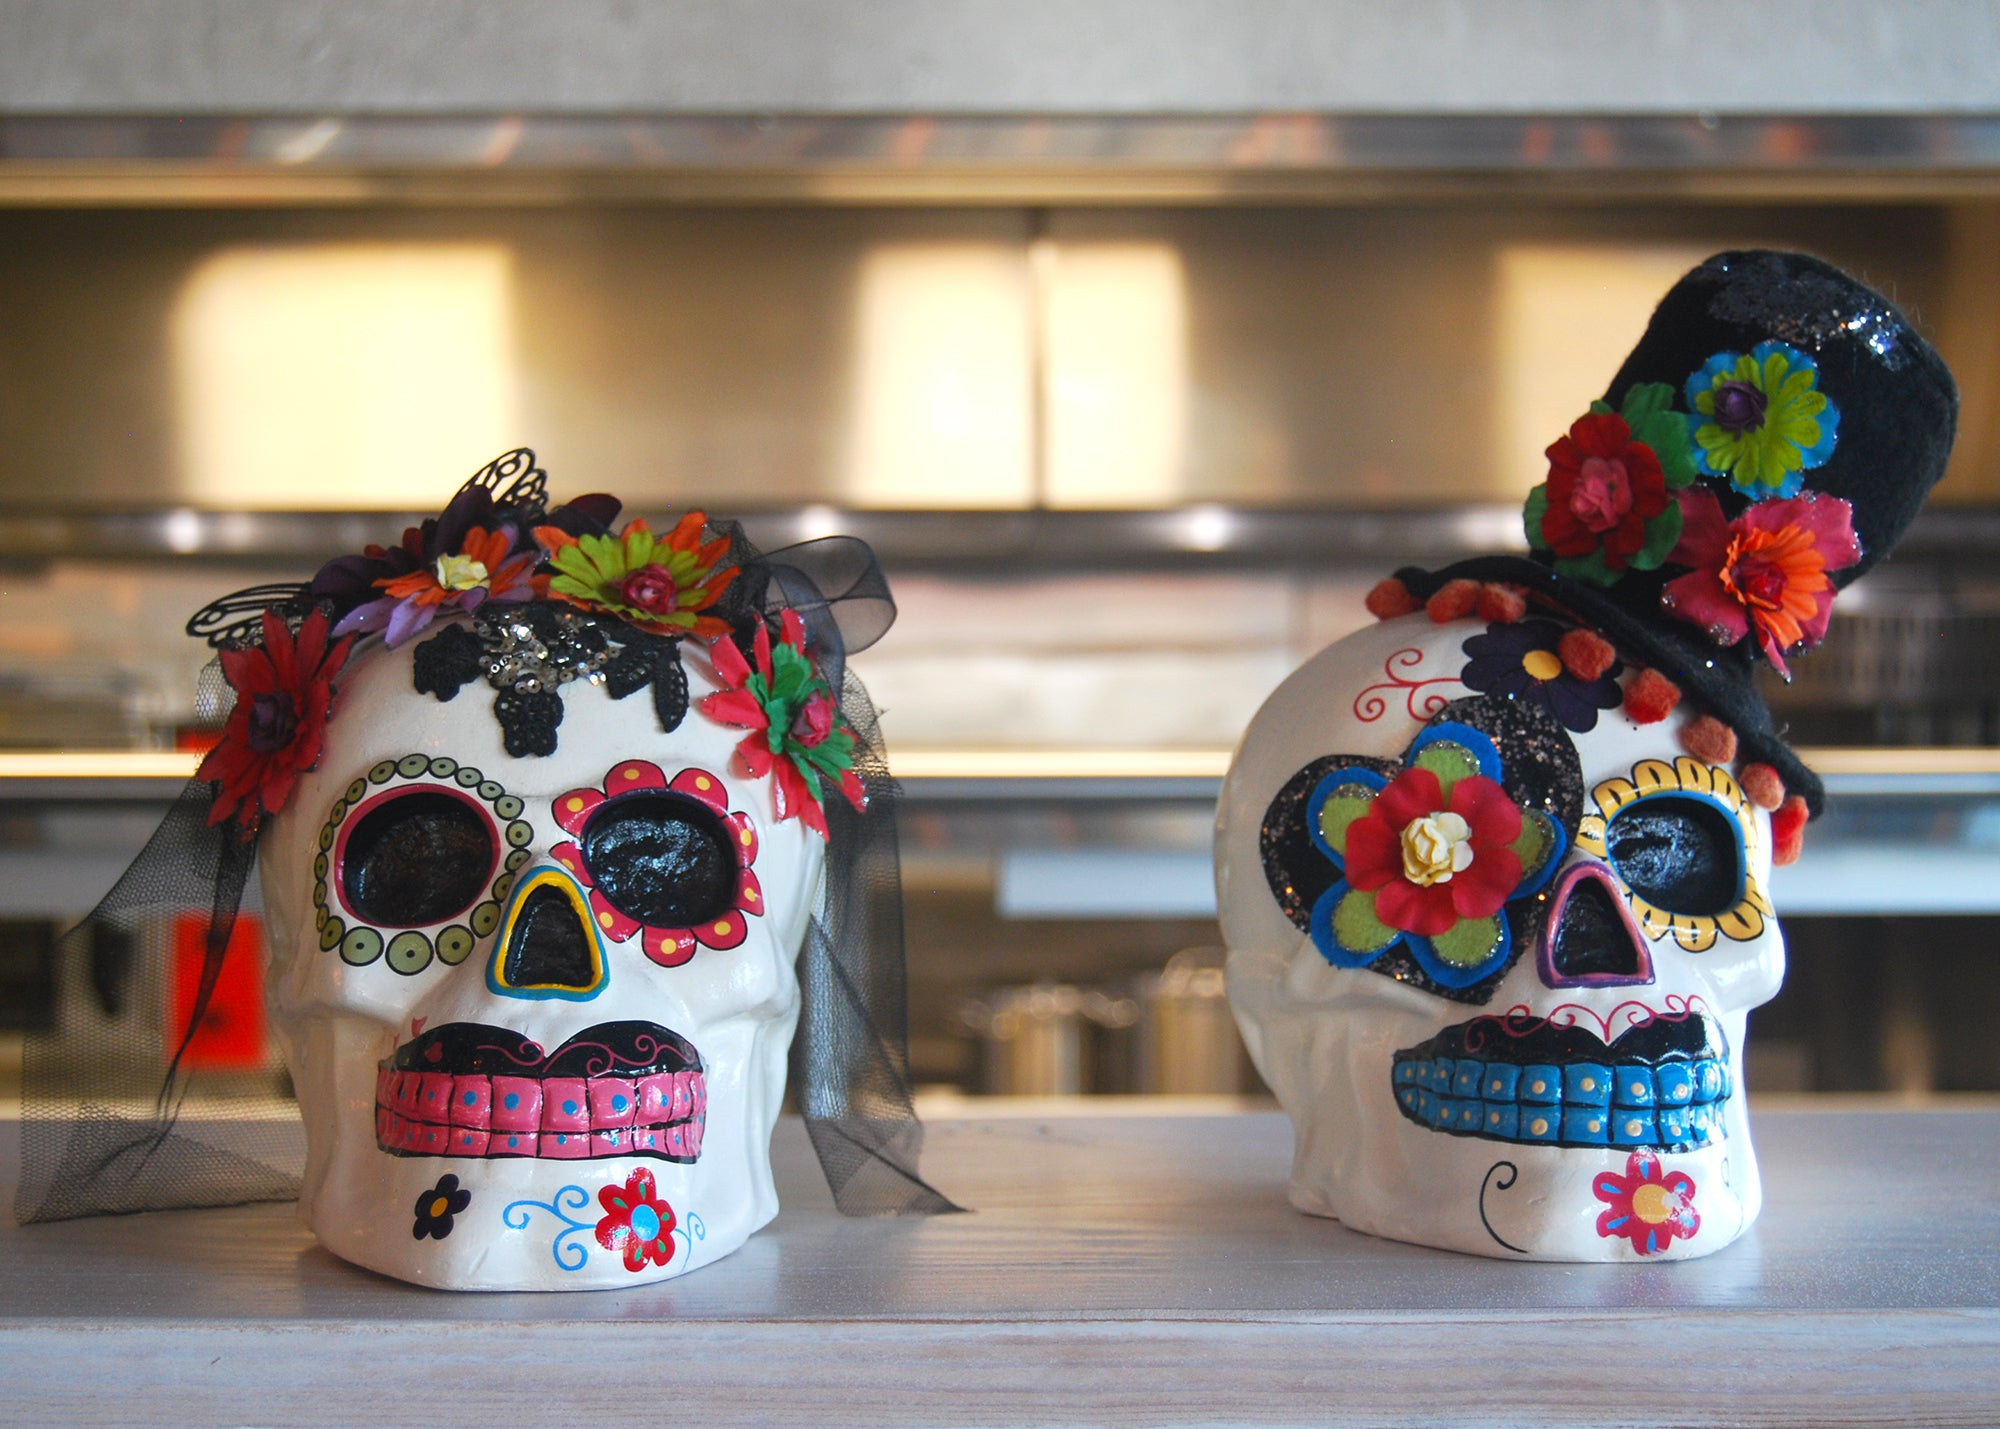 Candy skulls at Ghost Pepper Taqueria